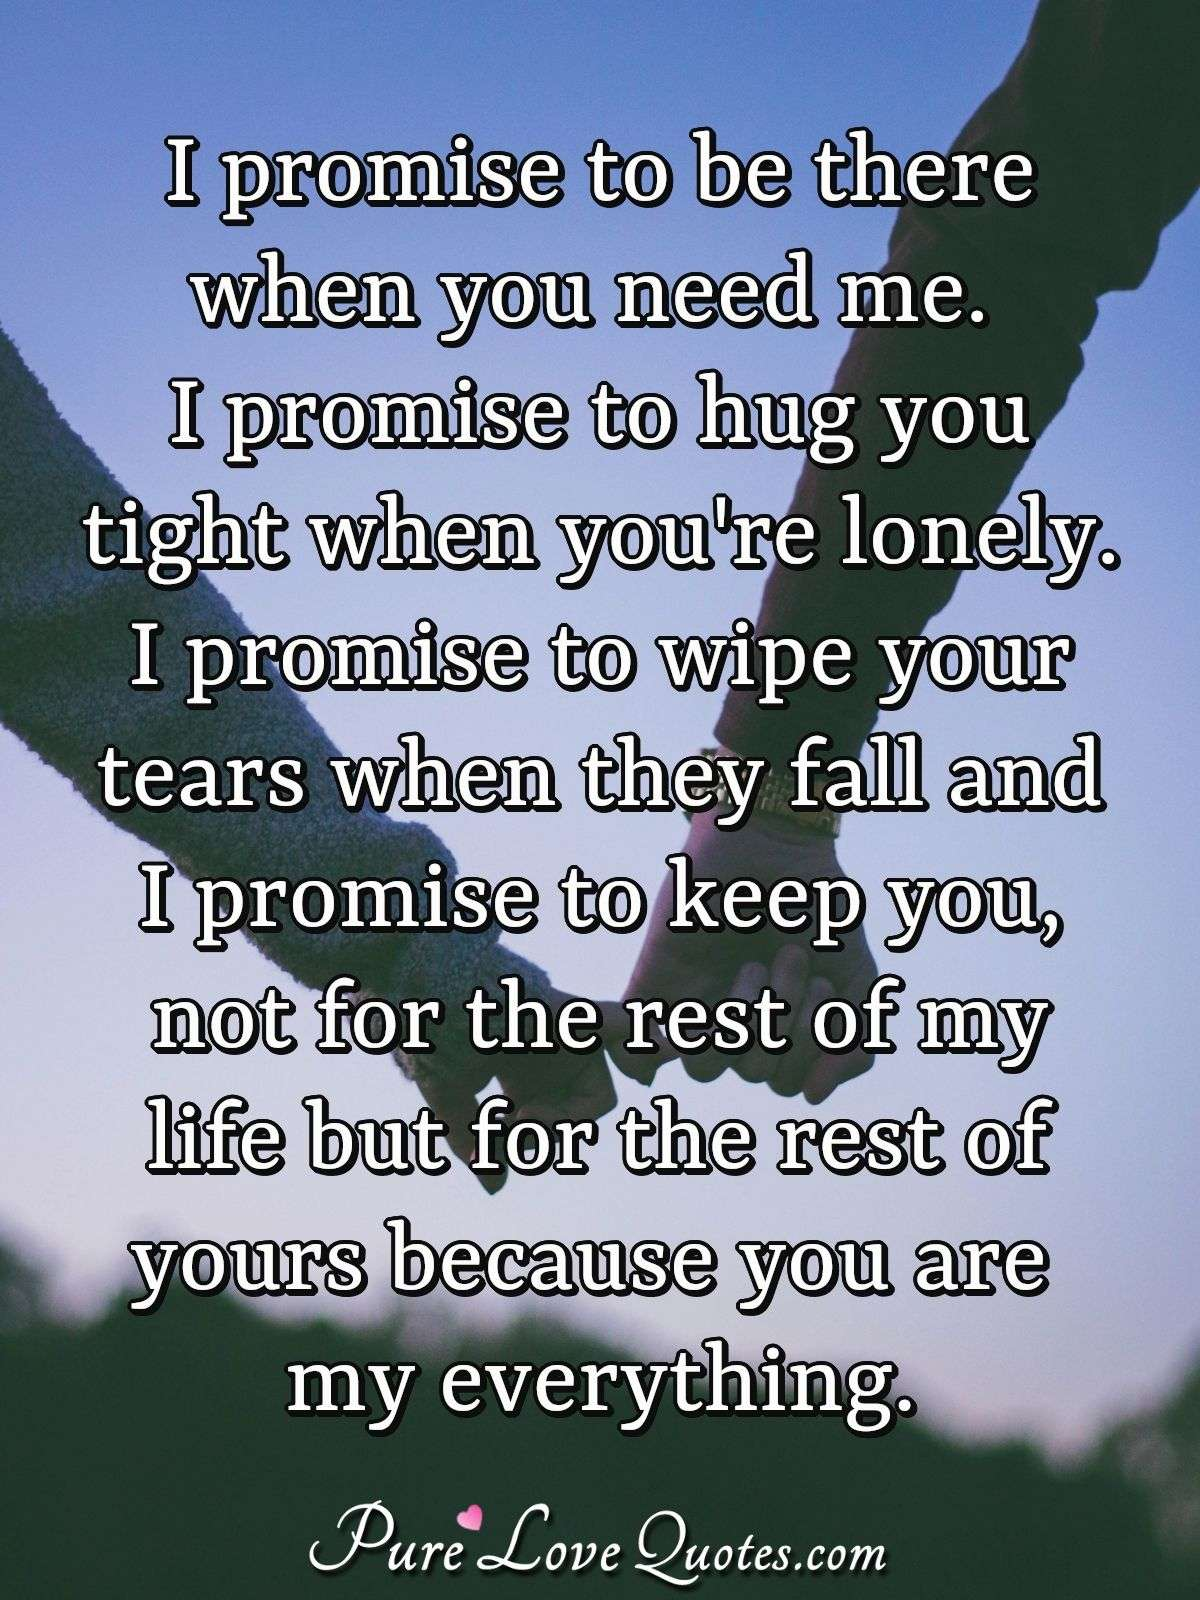 I promise to be there when you need me. I promise to hug you tight